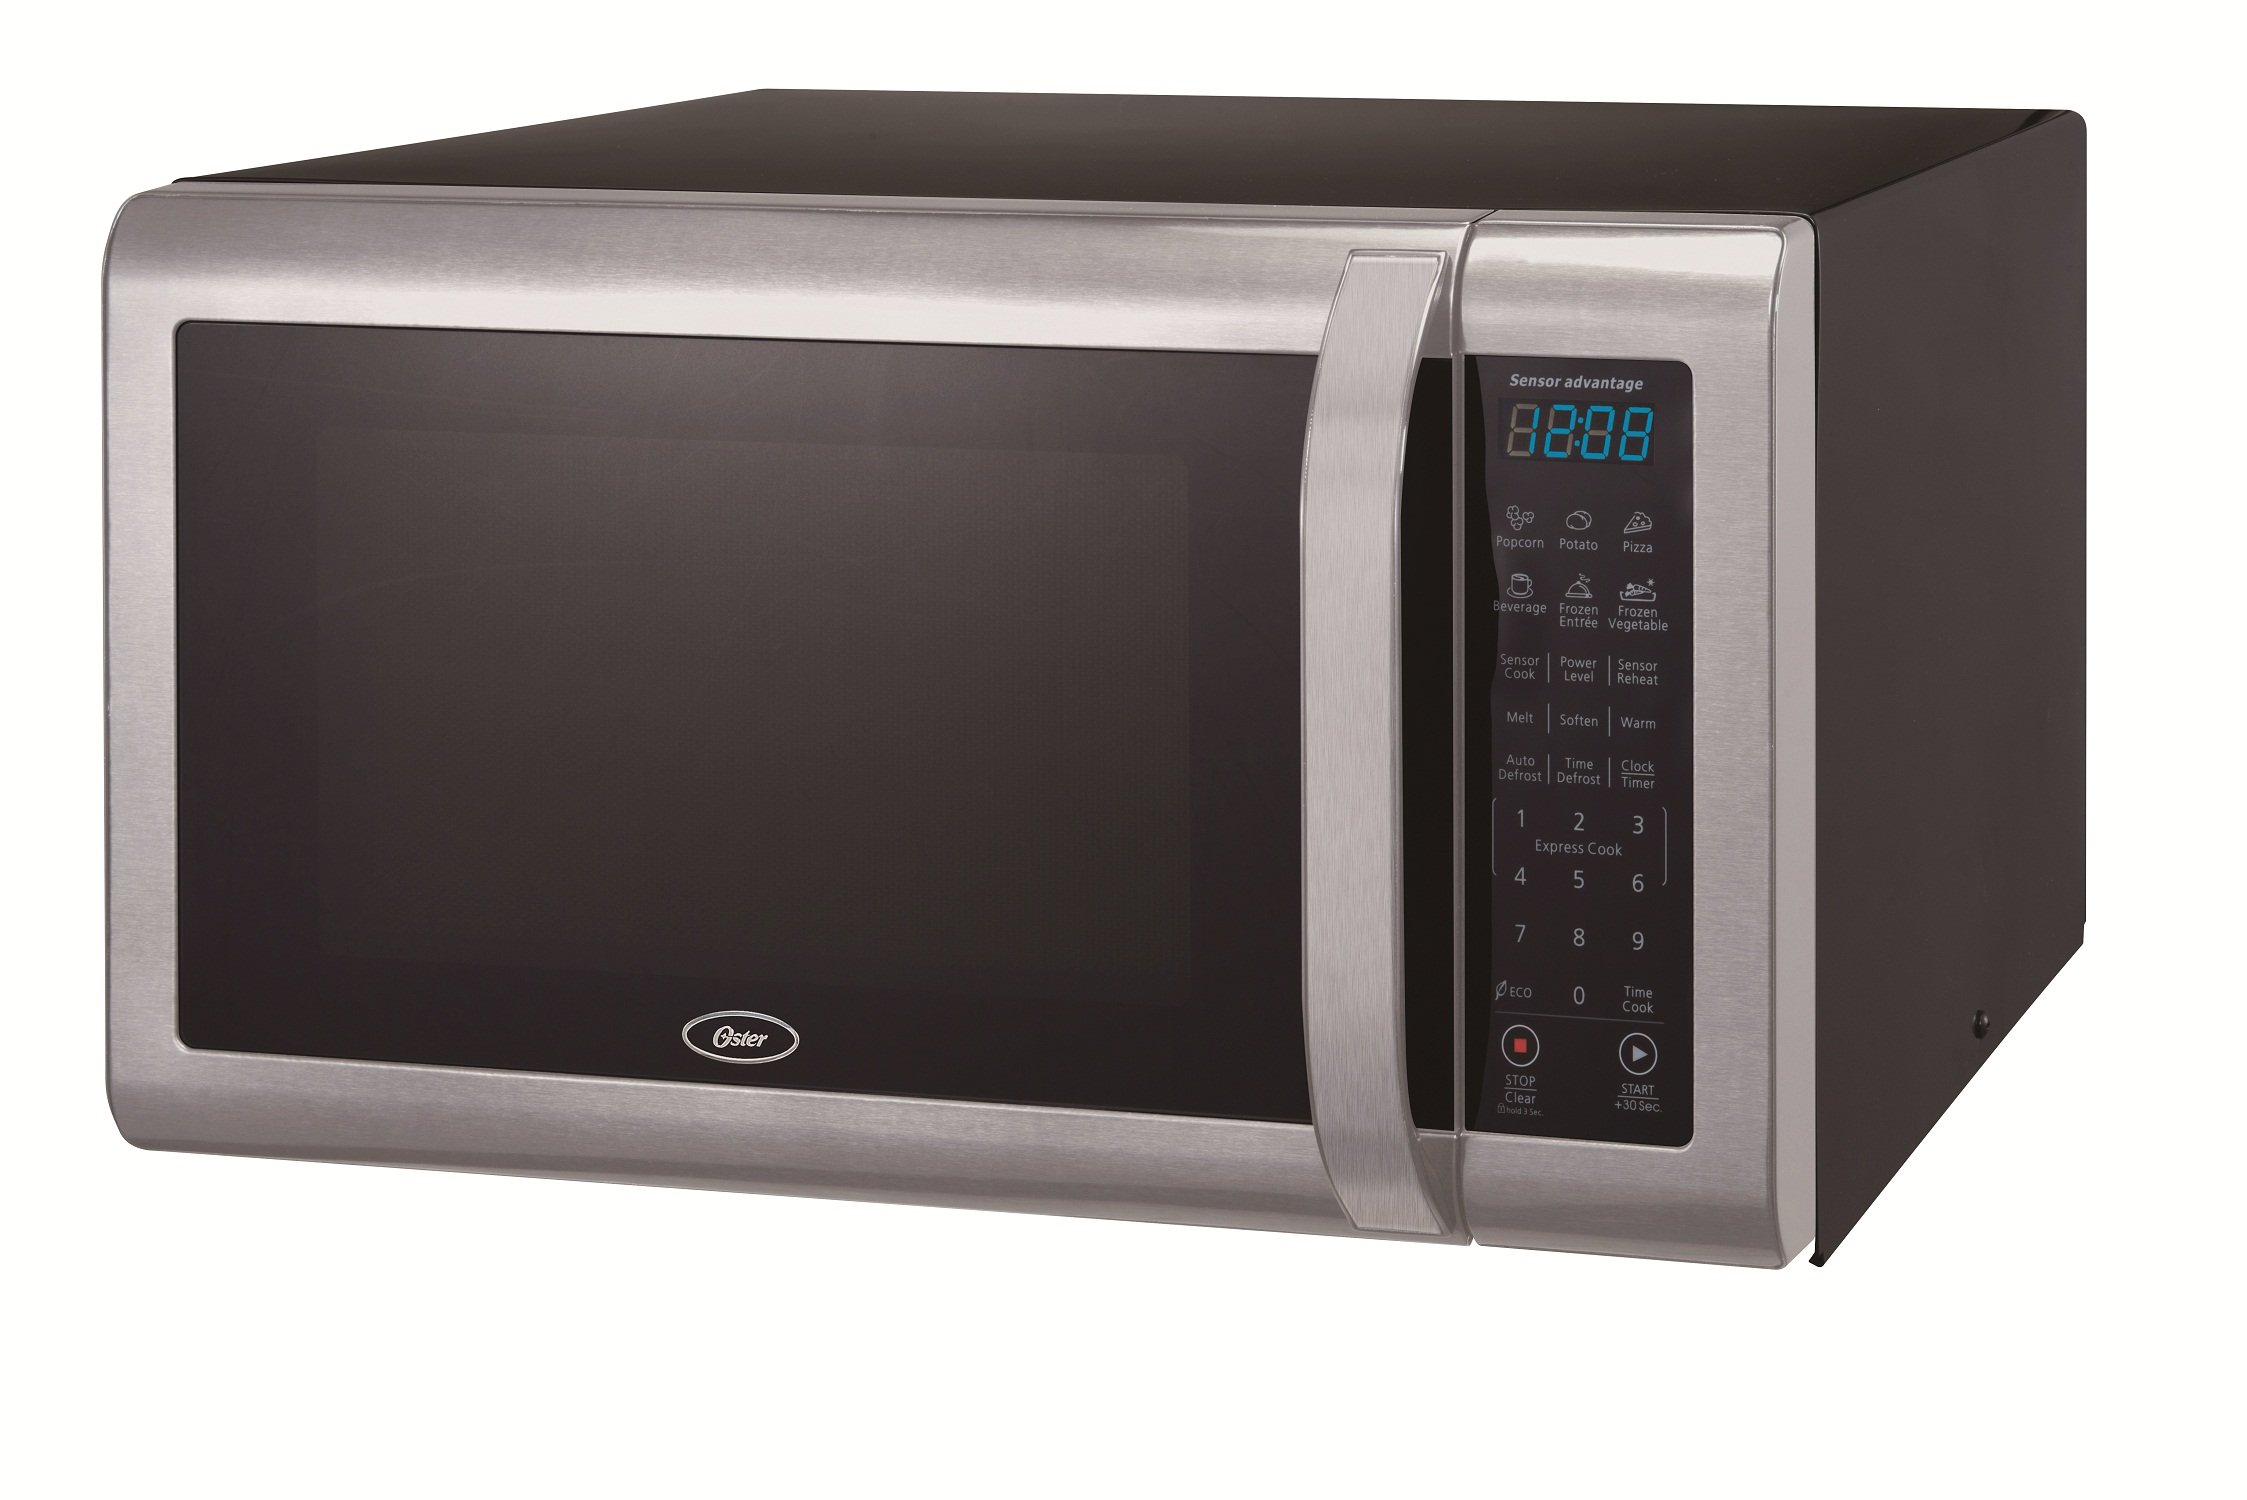 Oster OGCMWX14S2BS-11 1.4 cu. Ft. Microwave Oven, Stainless Steel